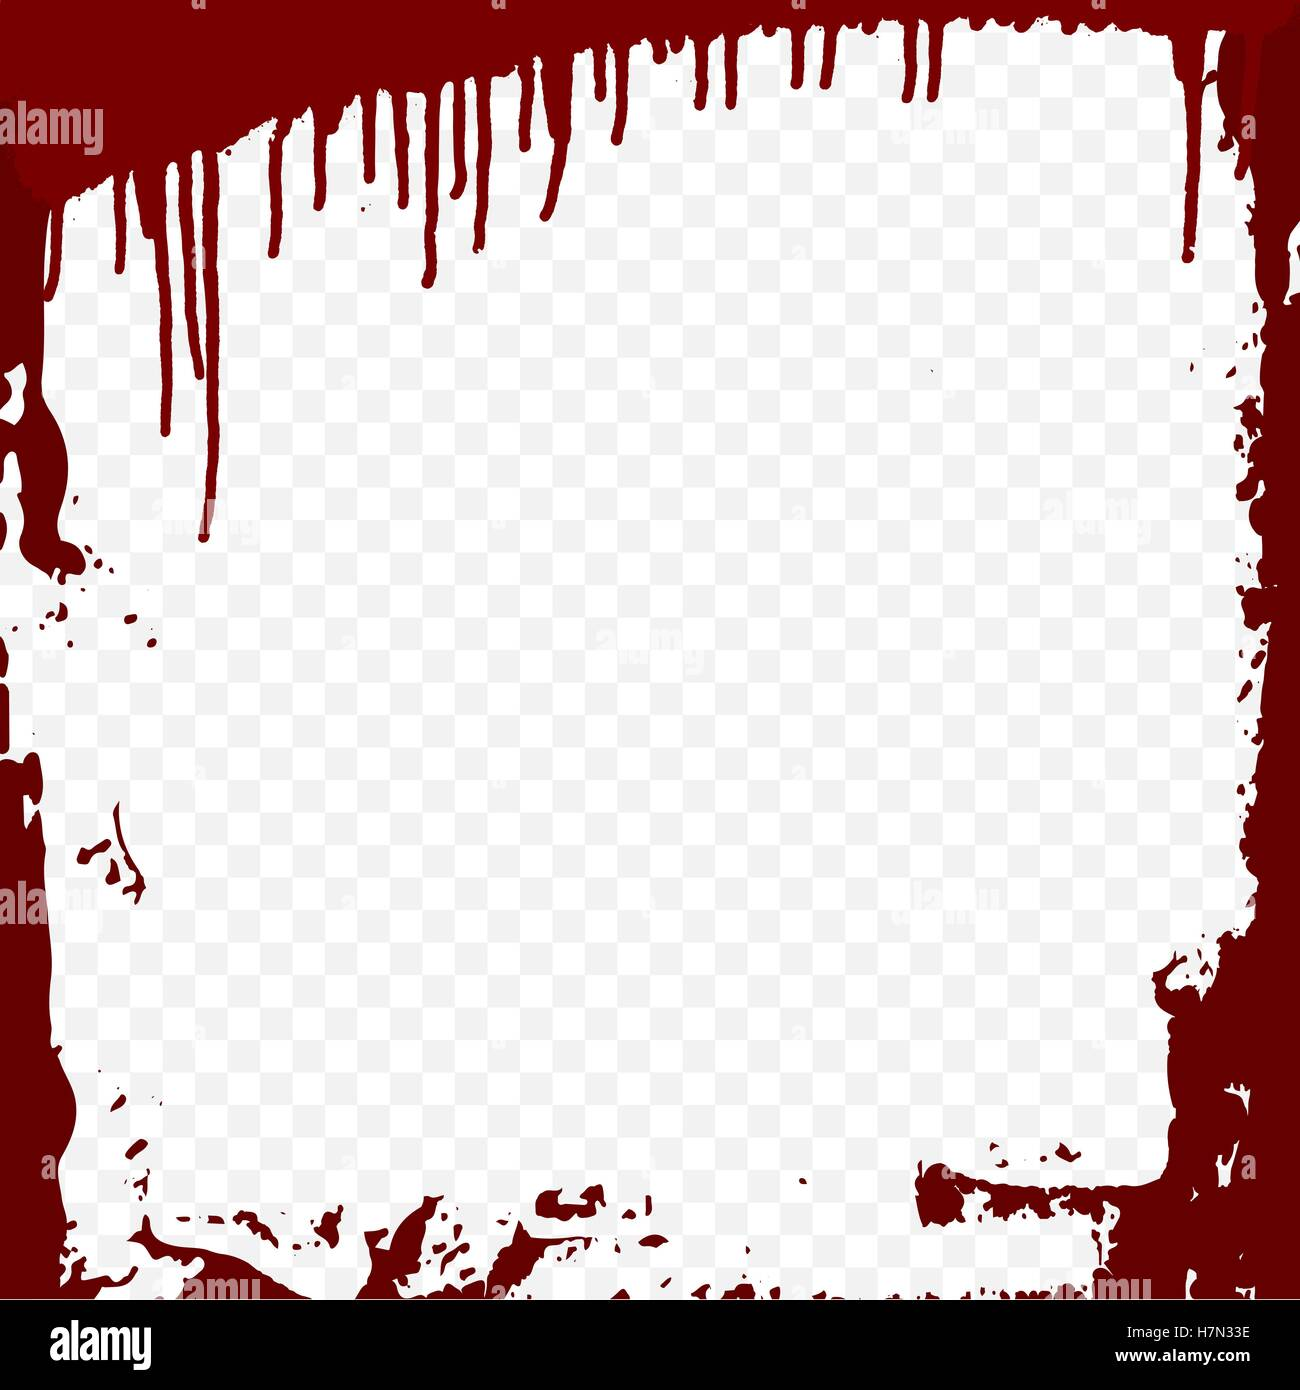 bloody frame template stock vector art amp illustration